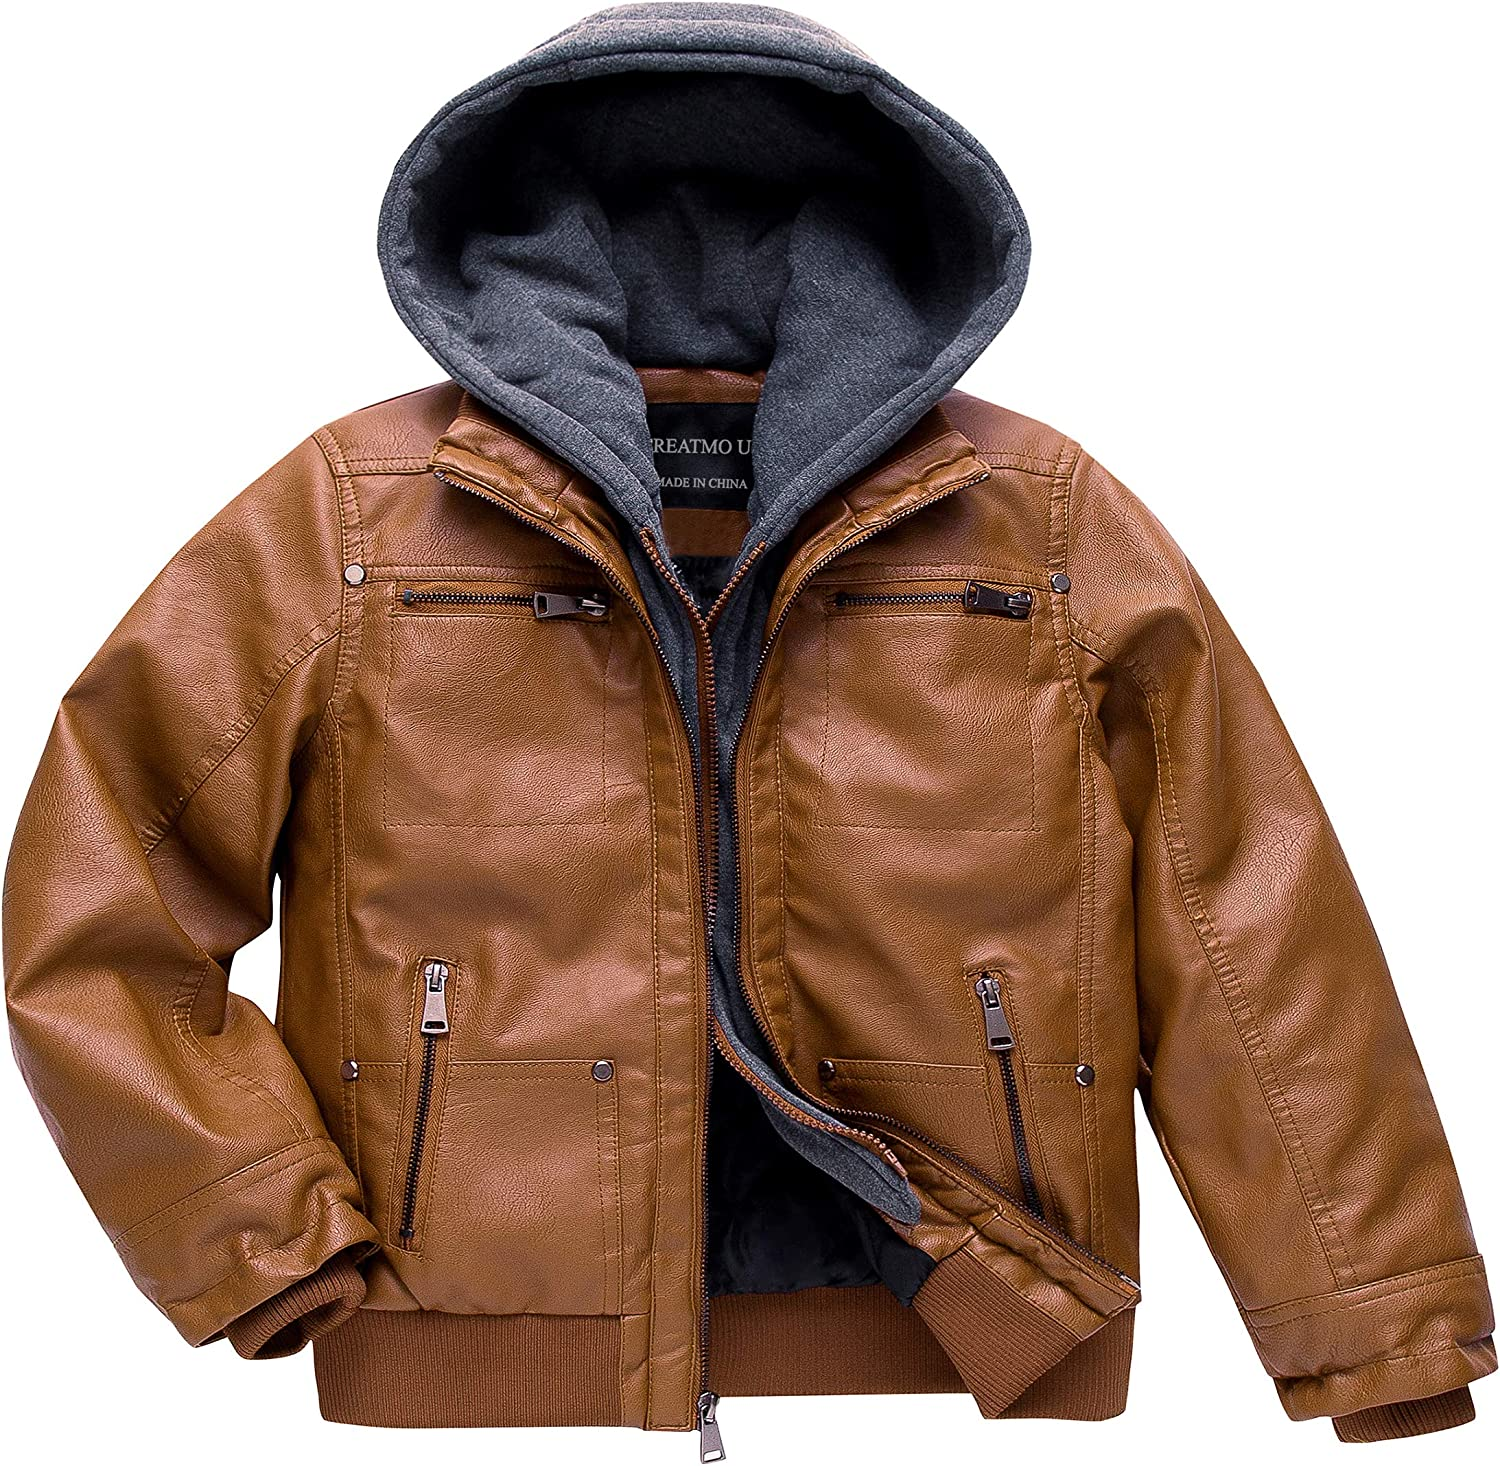 Boy's Faux NEW before selling Discount mail order Leather Jacket Windproof Winter Coat Bomber Kids Warm